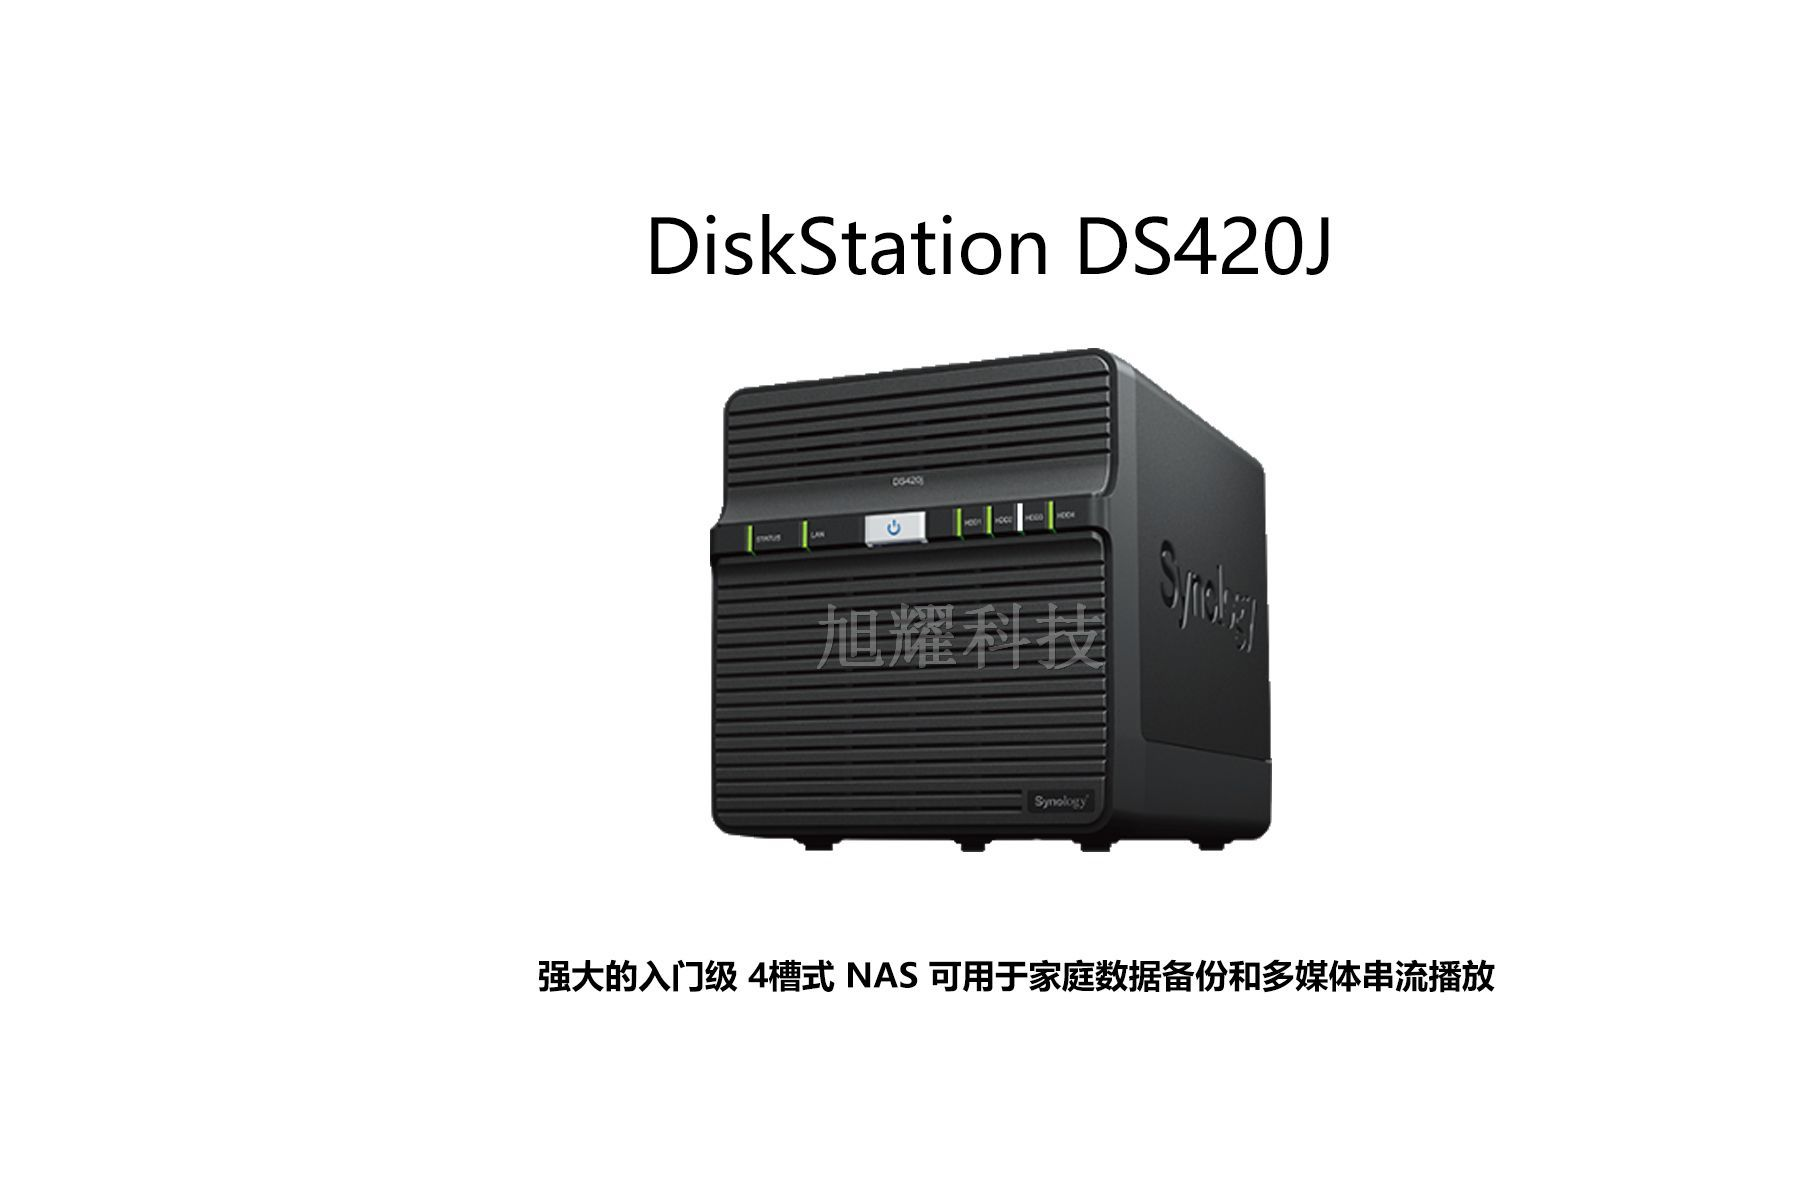 群晖 DiskStation DS418j